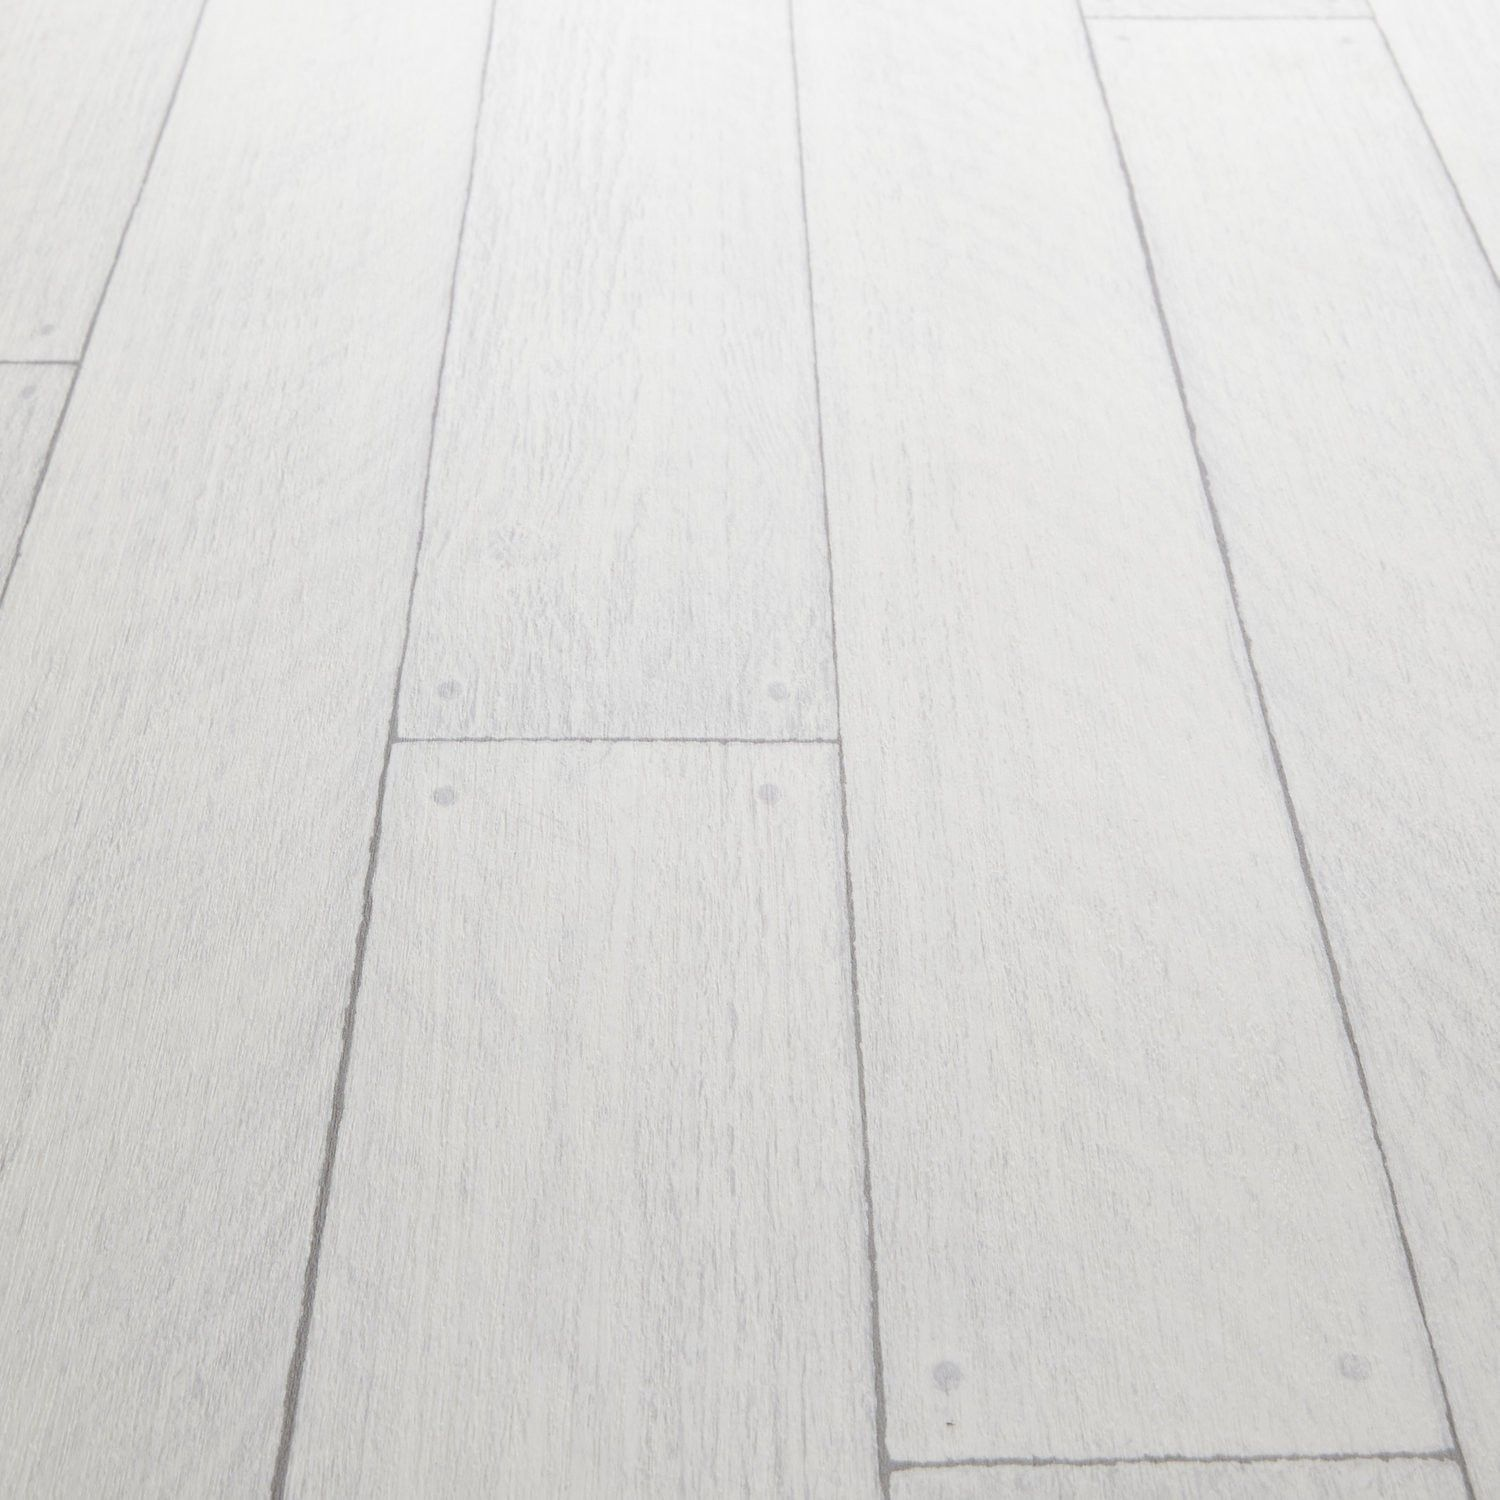 Platinum virgin white wood effect vinyl flooring vinyls for Wood effect vinyl flooring bathroom